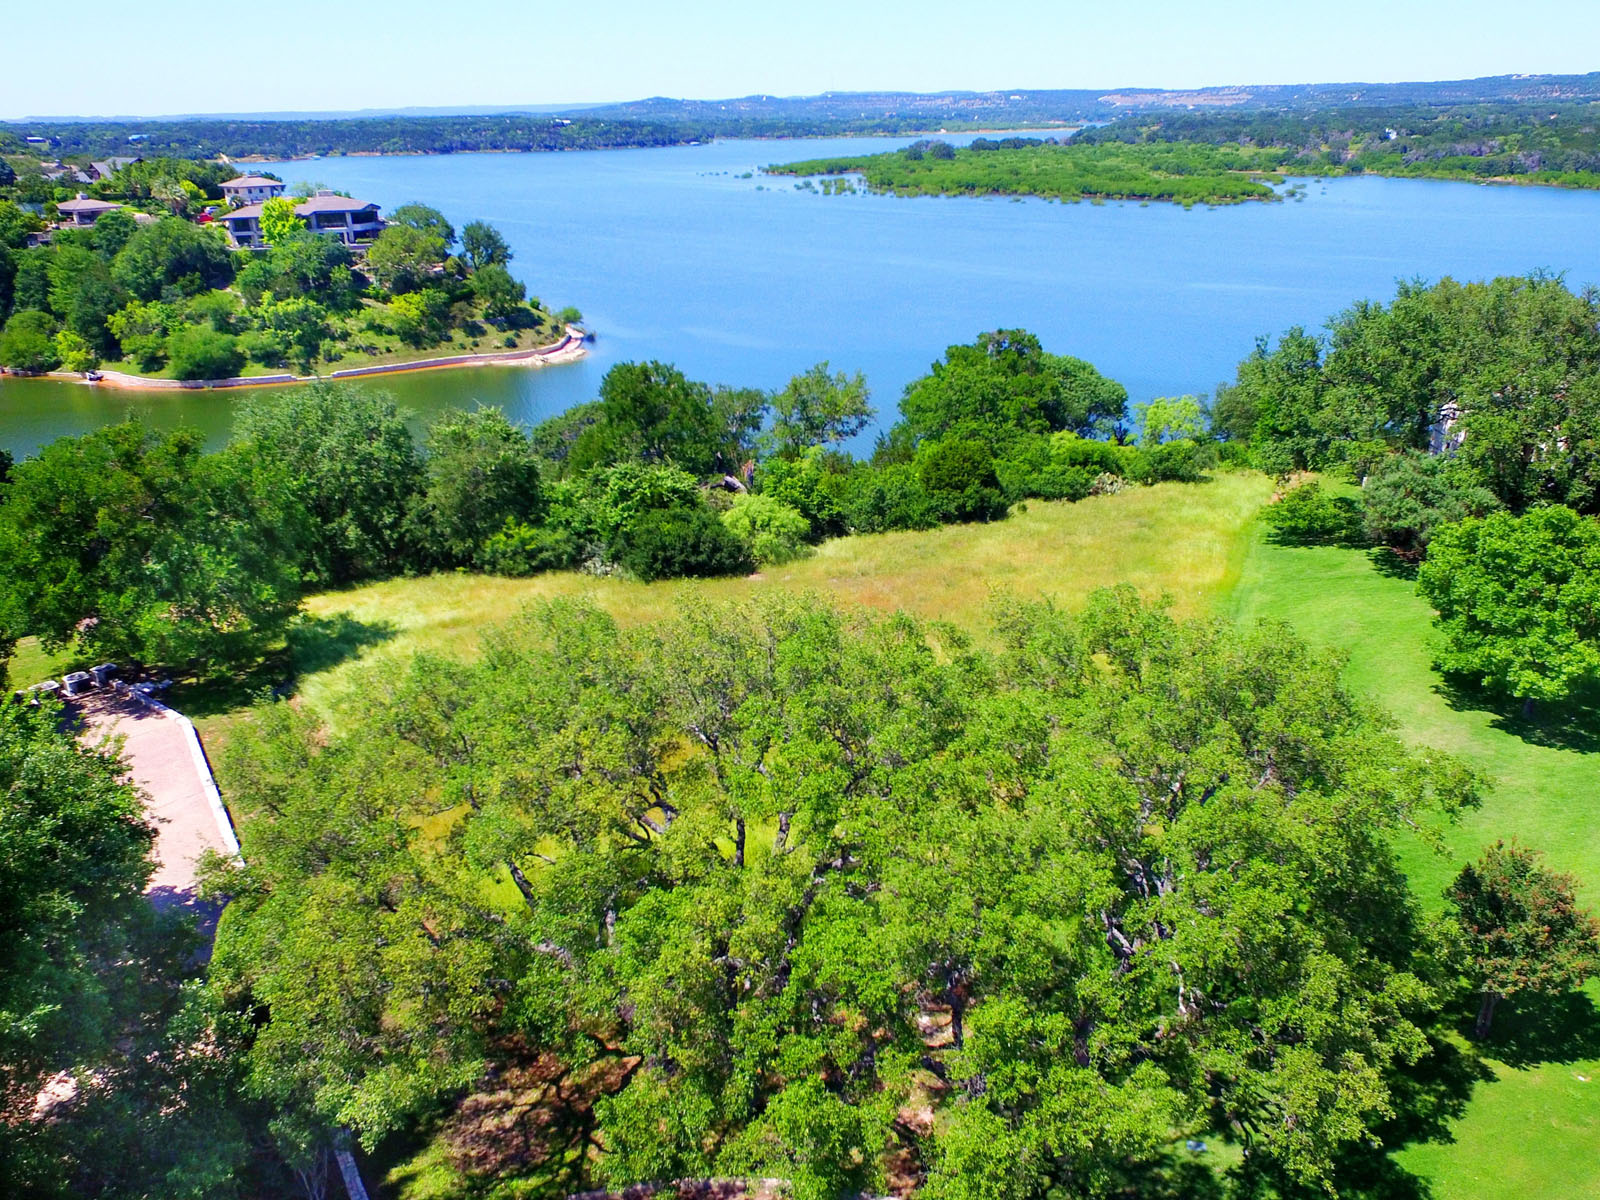 Land for Sale at Lake Travis Waterfront 2512 Sailpoint Dr Spicewood, Texas 78669 United States